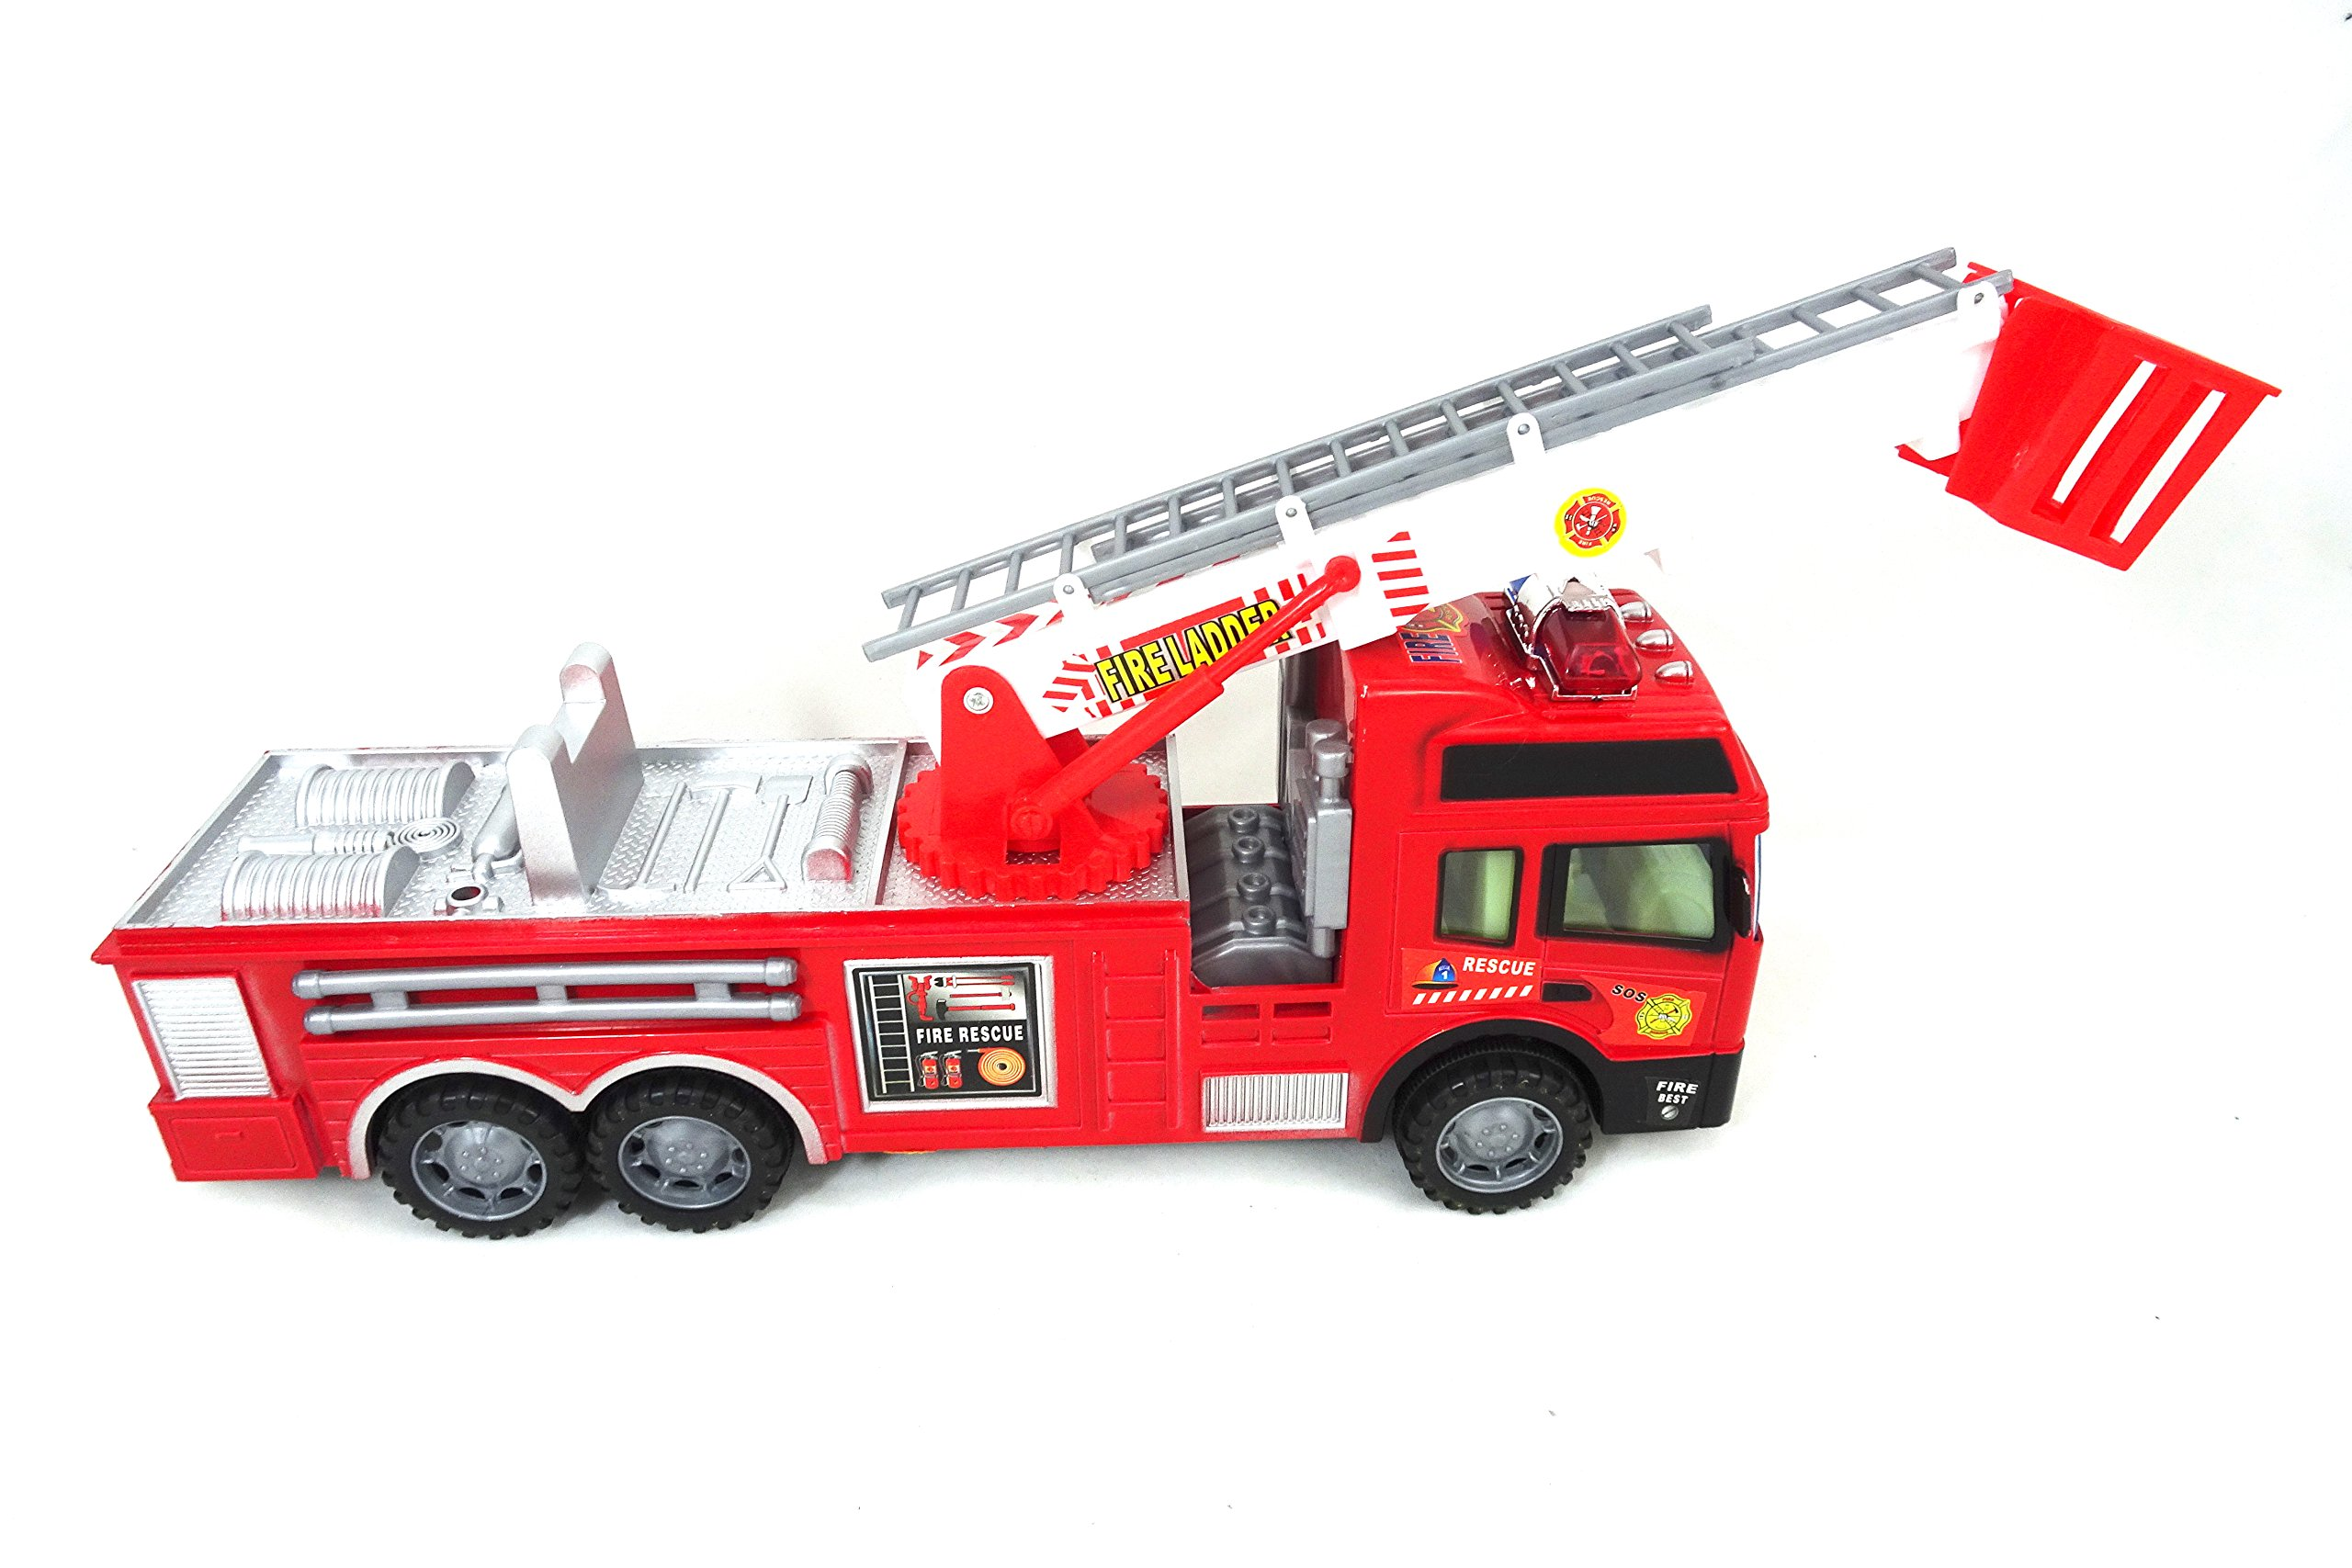 Fire Station Rescue Toy Fire Truck For Kids - Awesome Red Fire Engine With Stickers & 360 Operational Ladder